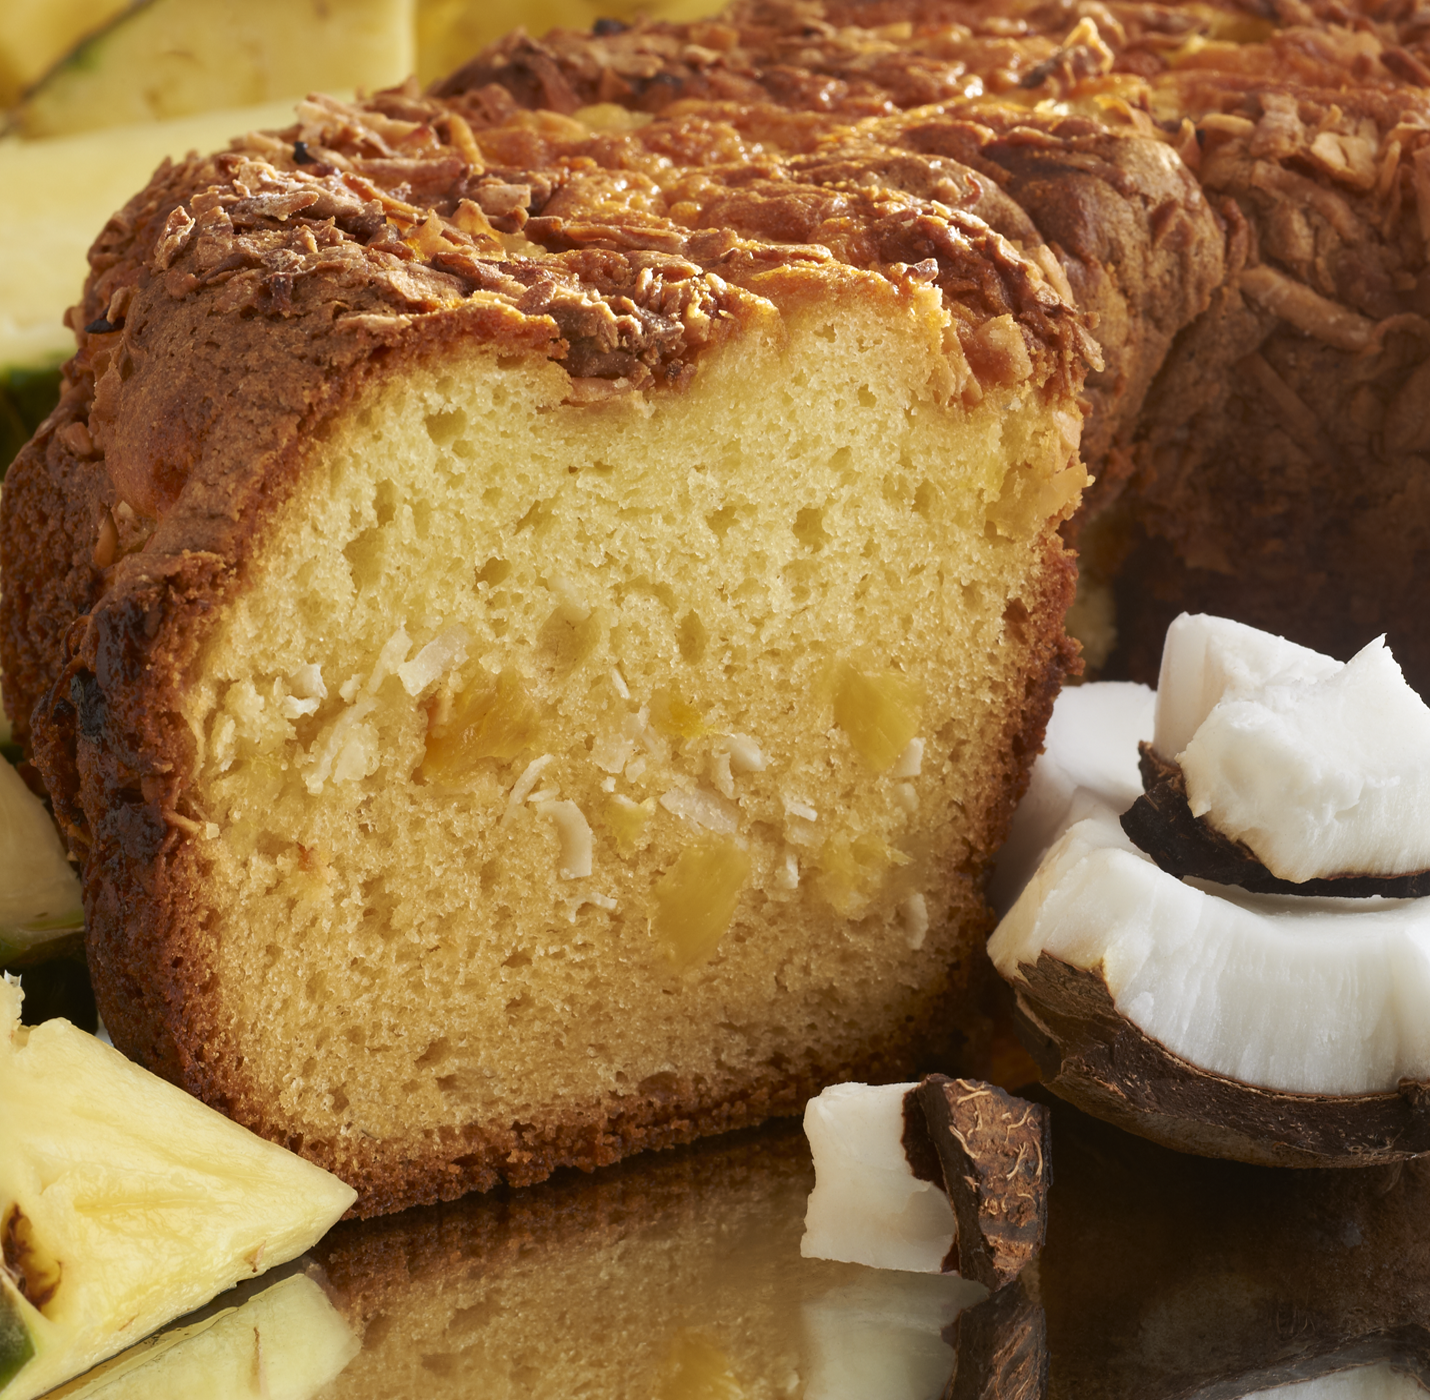 My Grandma's of New England Pineapple Coconut Coffee Cake